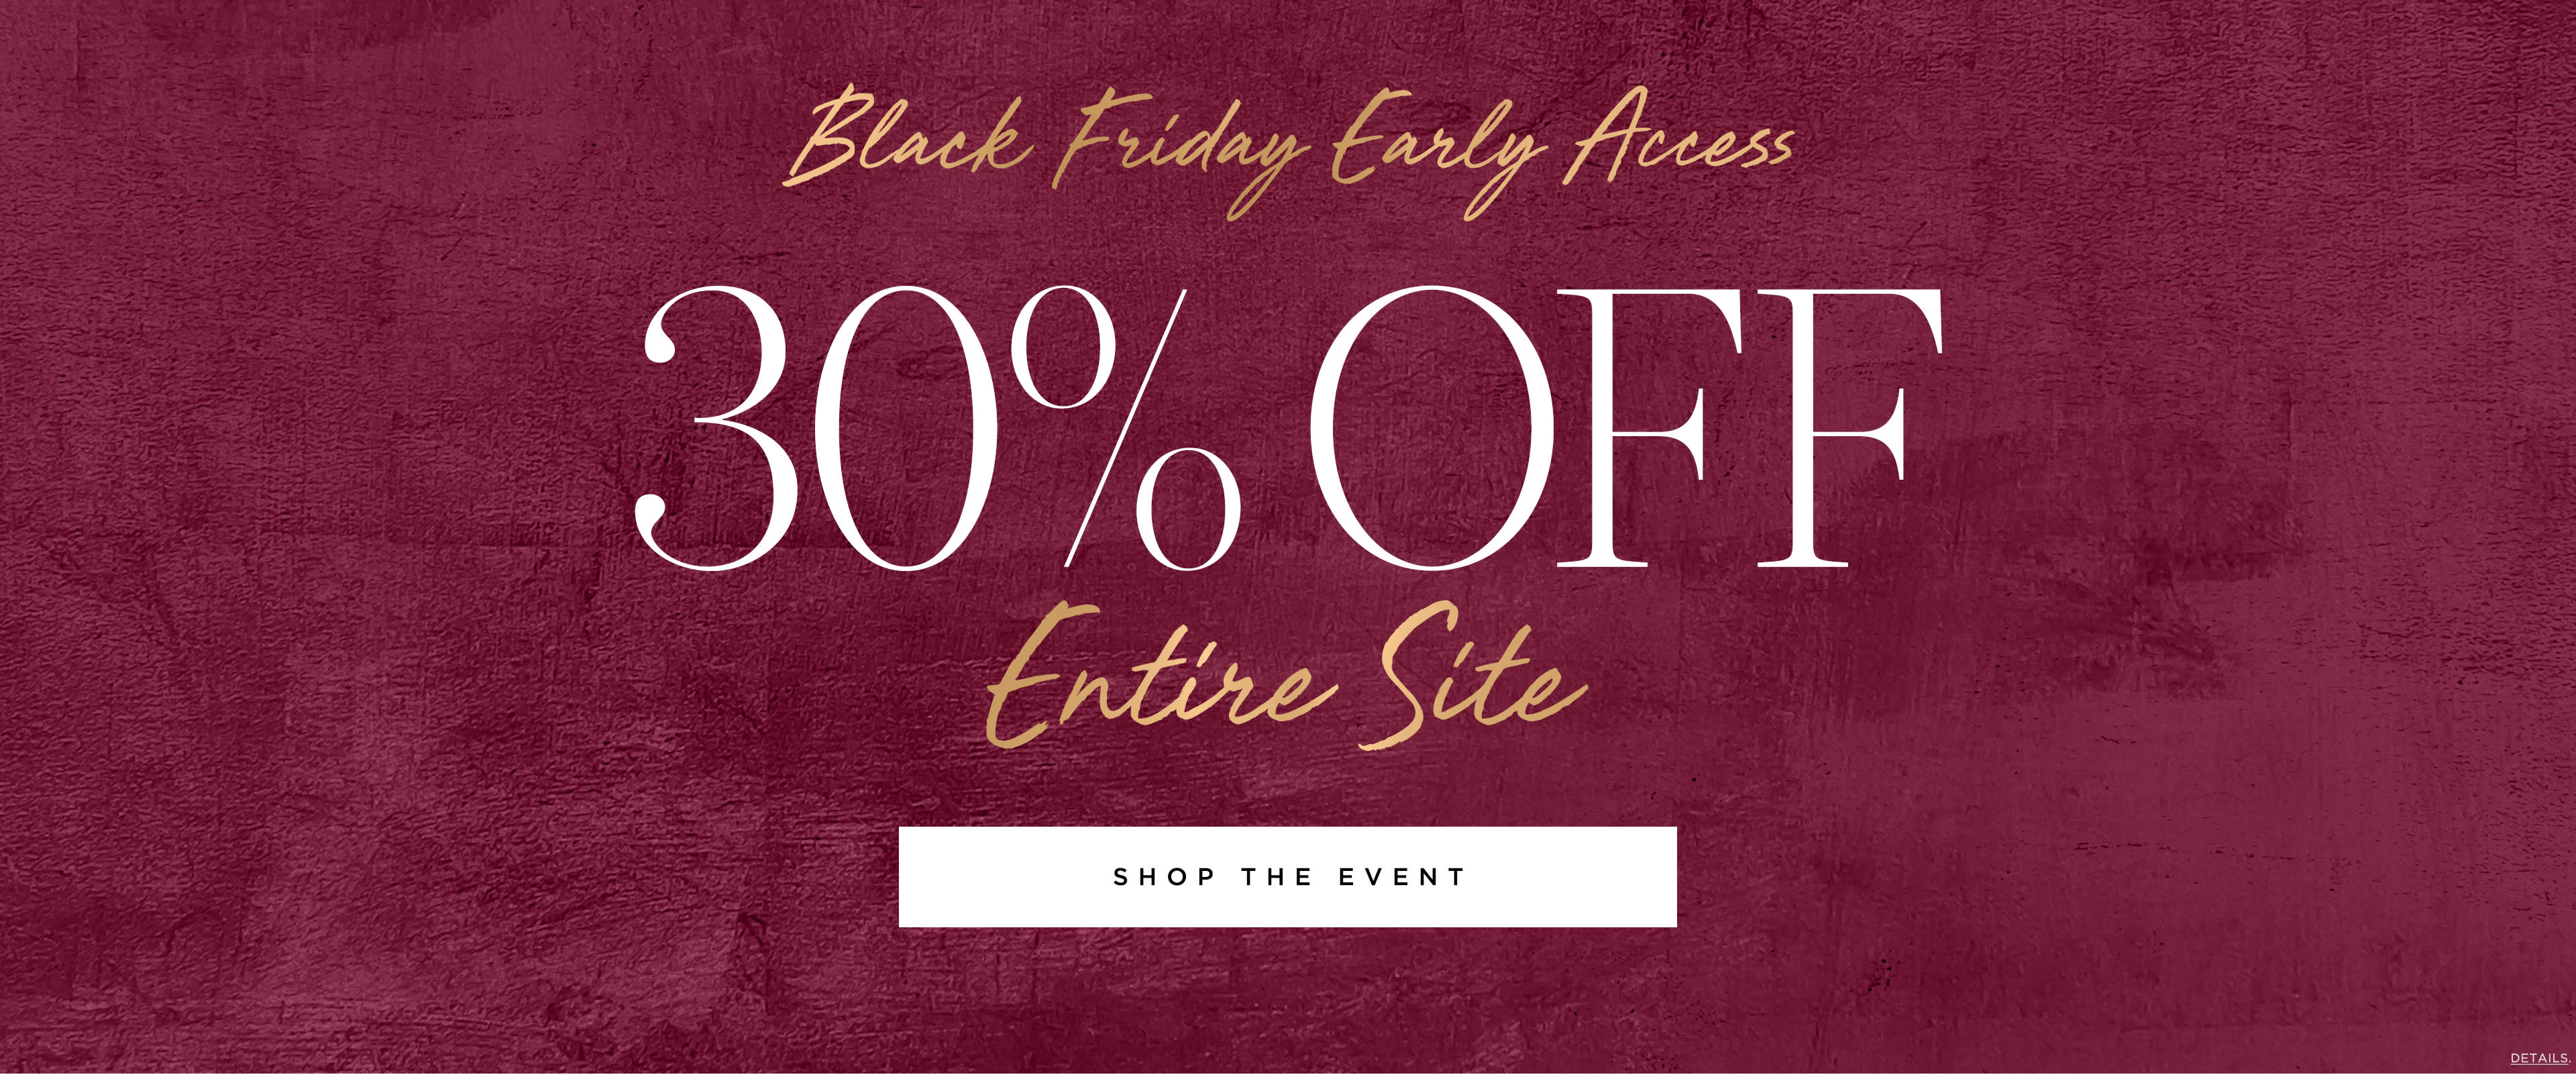 30% off entire site. Black Friday preview.